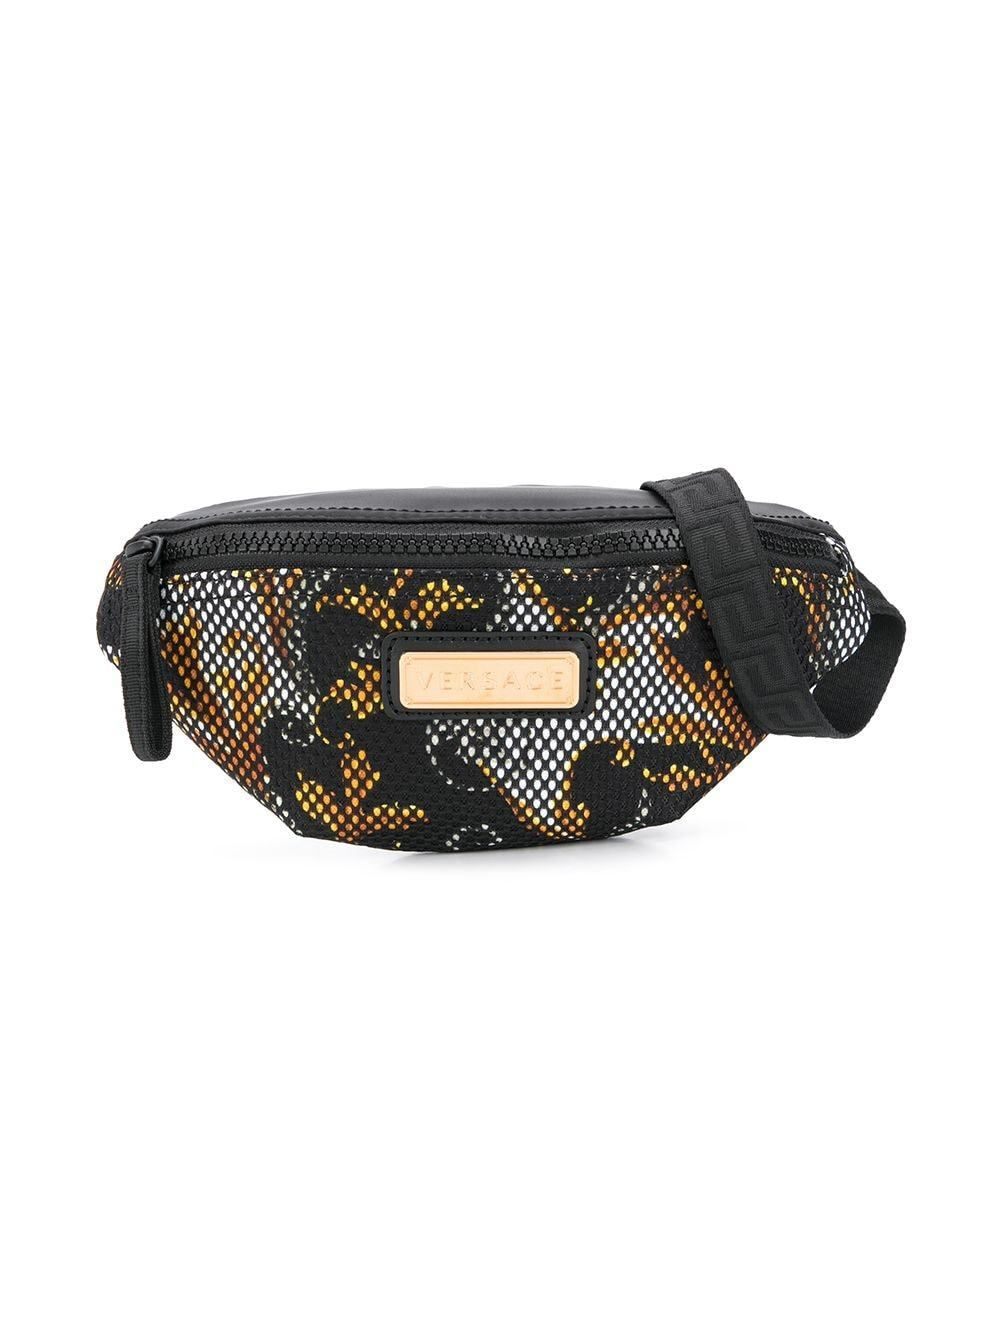 VERSACE KIDS Logo Plaque Belt Bag Black - Maison De Fashion